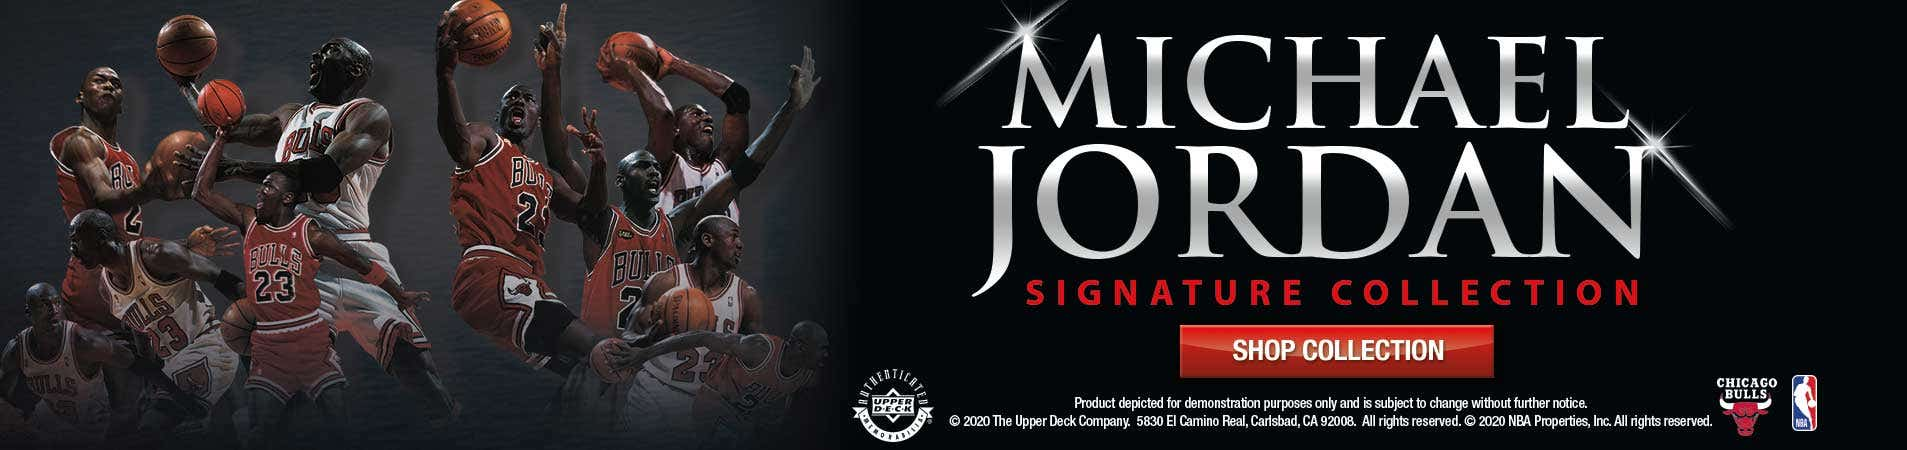 Browse Michael Jordan's Signature Collection Exclusively by Upper Deck!